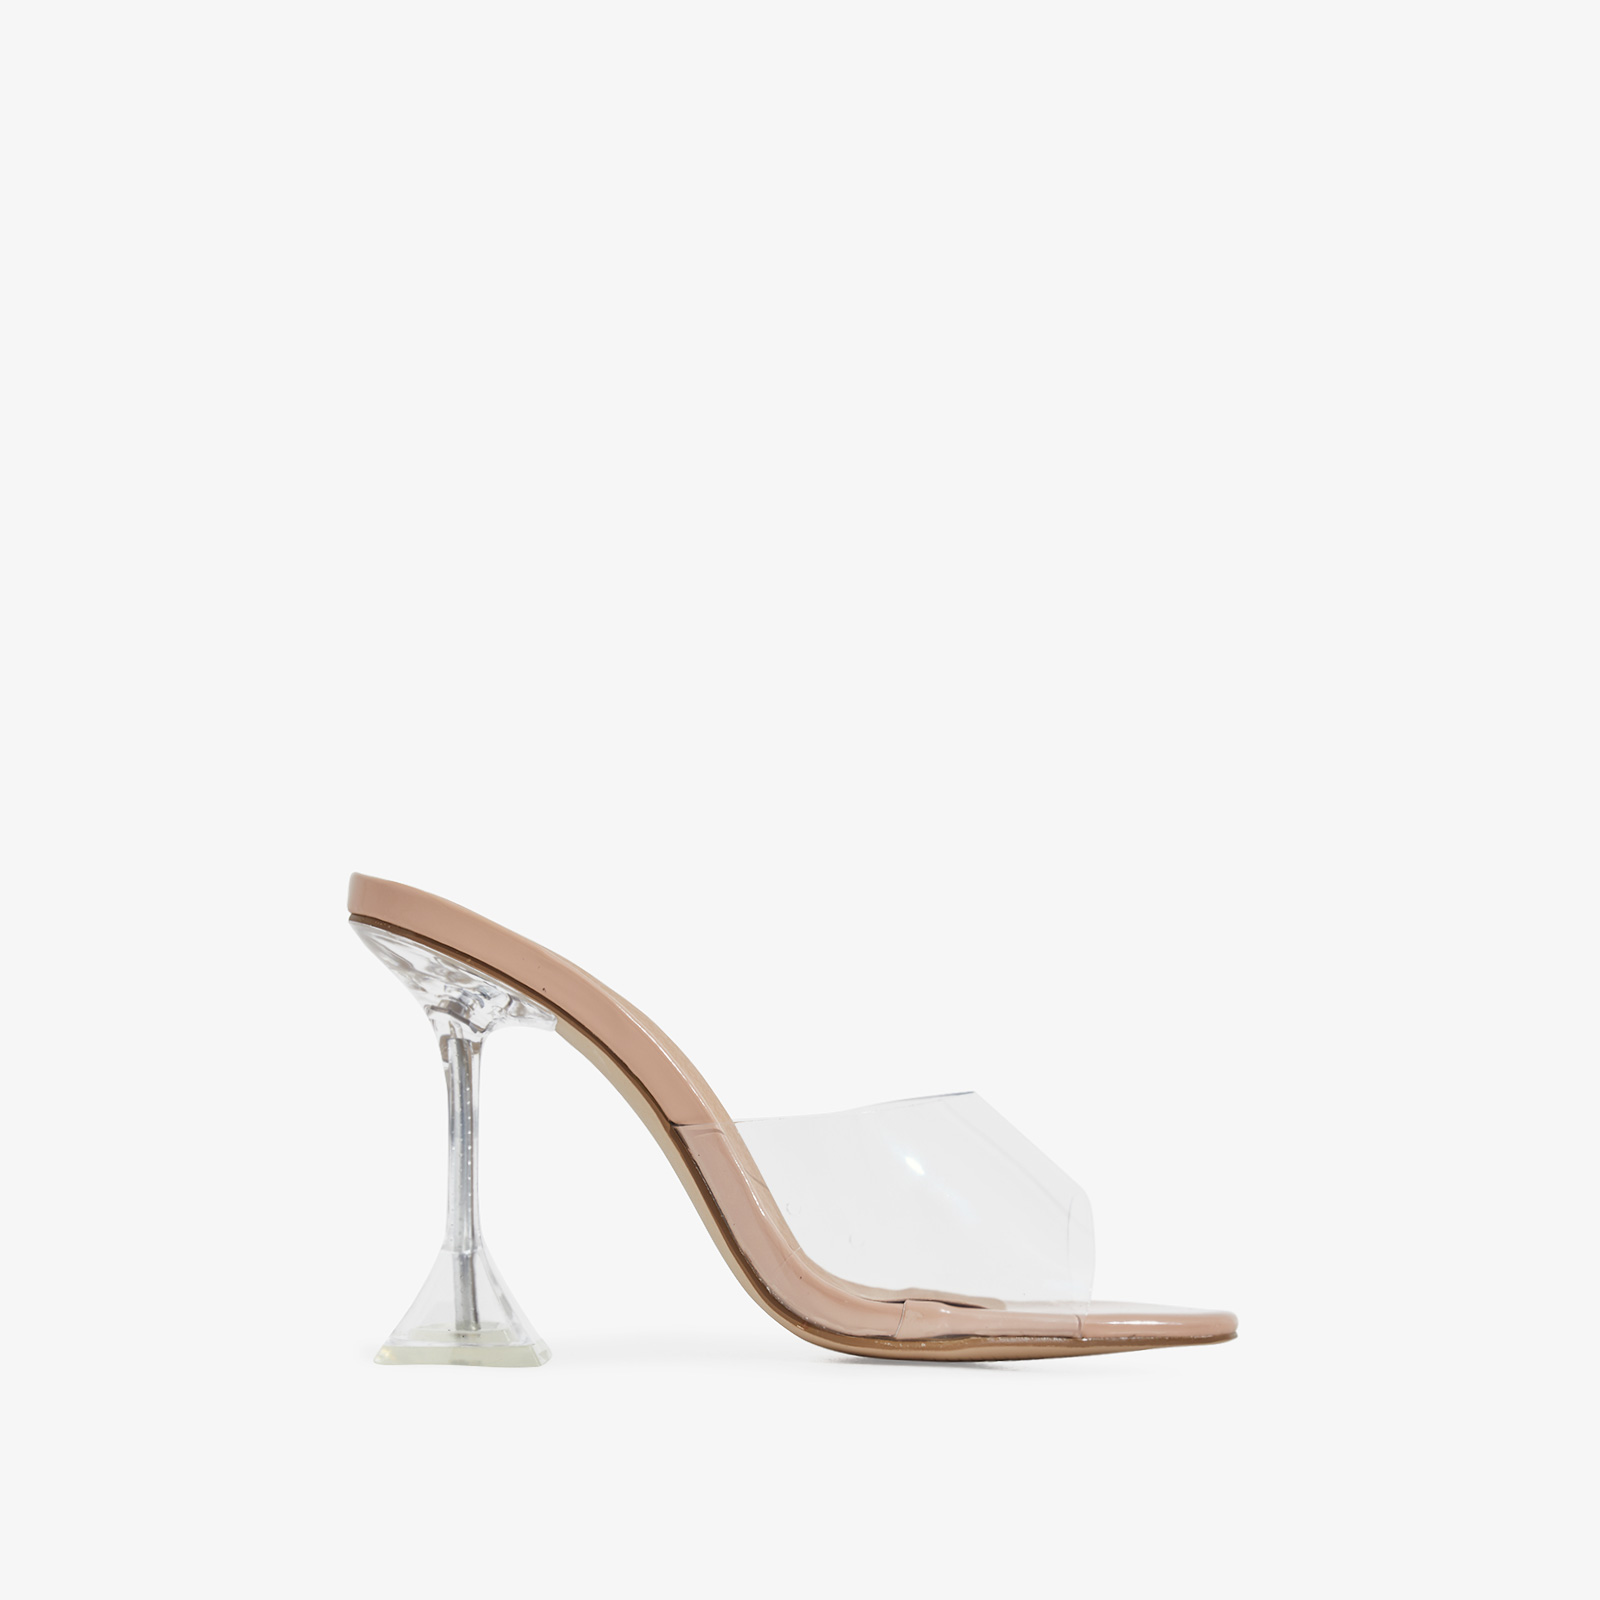 Lila Square Toe Perspex Clear Heel Mule In Nude Patent